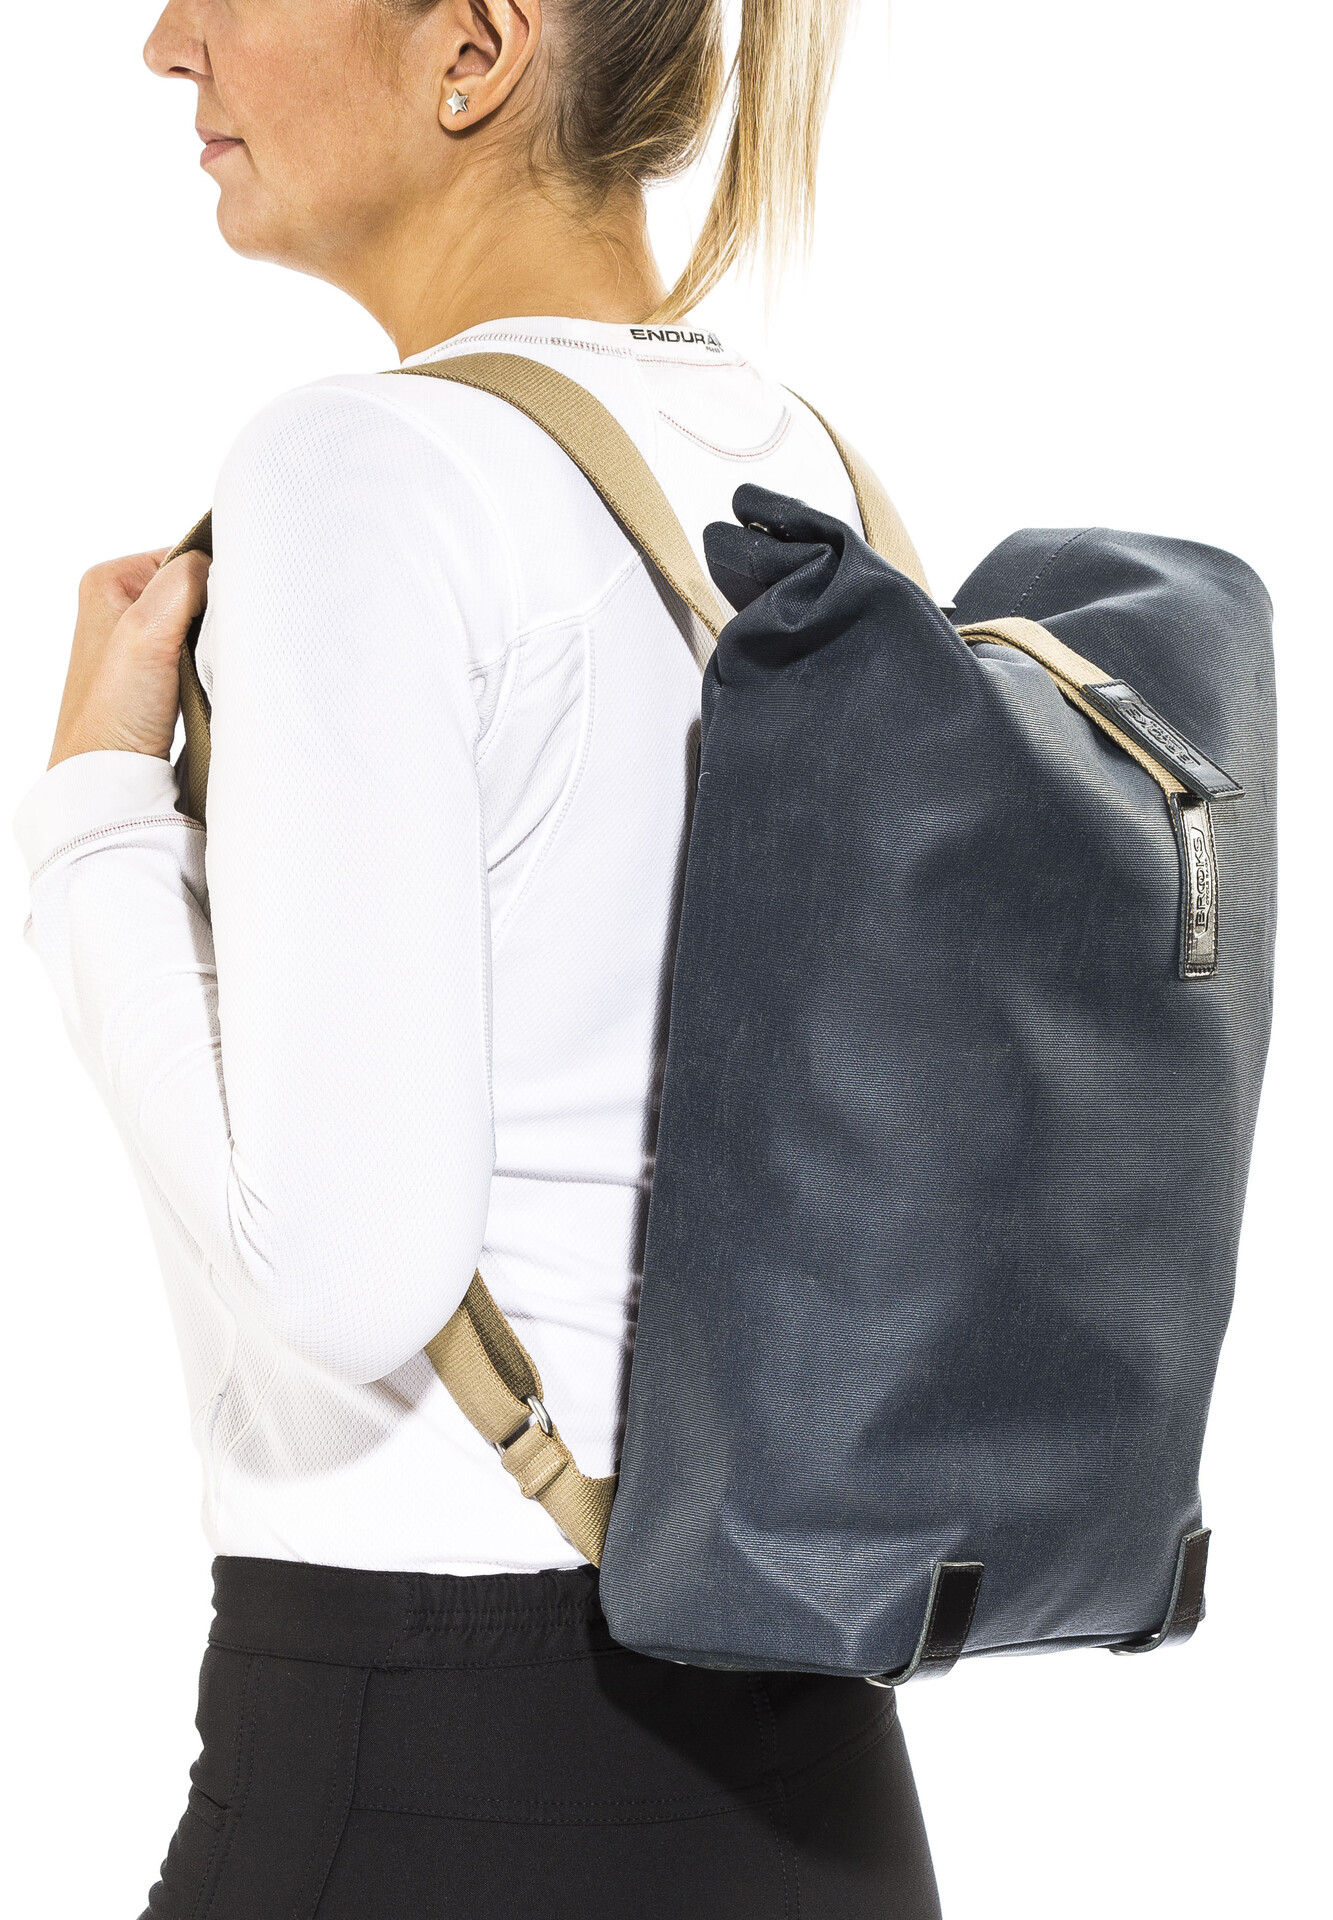 Brooks Pickwick Canvas Backpack Rucksack 26 L Leder Segeltuch Fahrrad Rad Urban